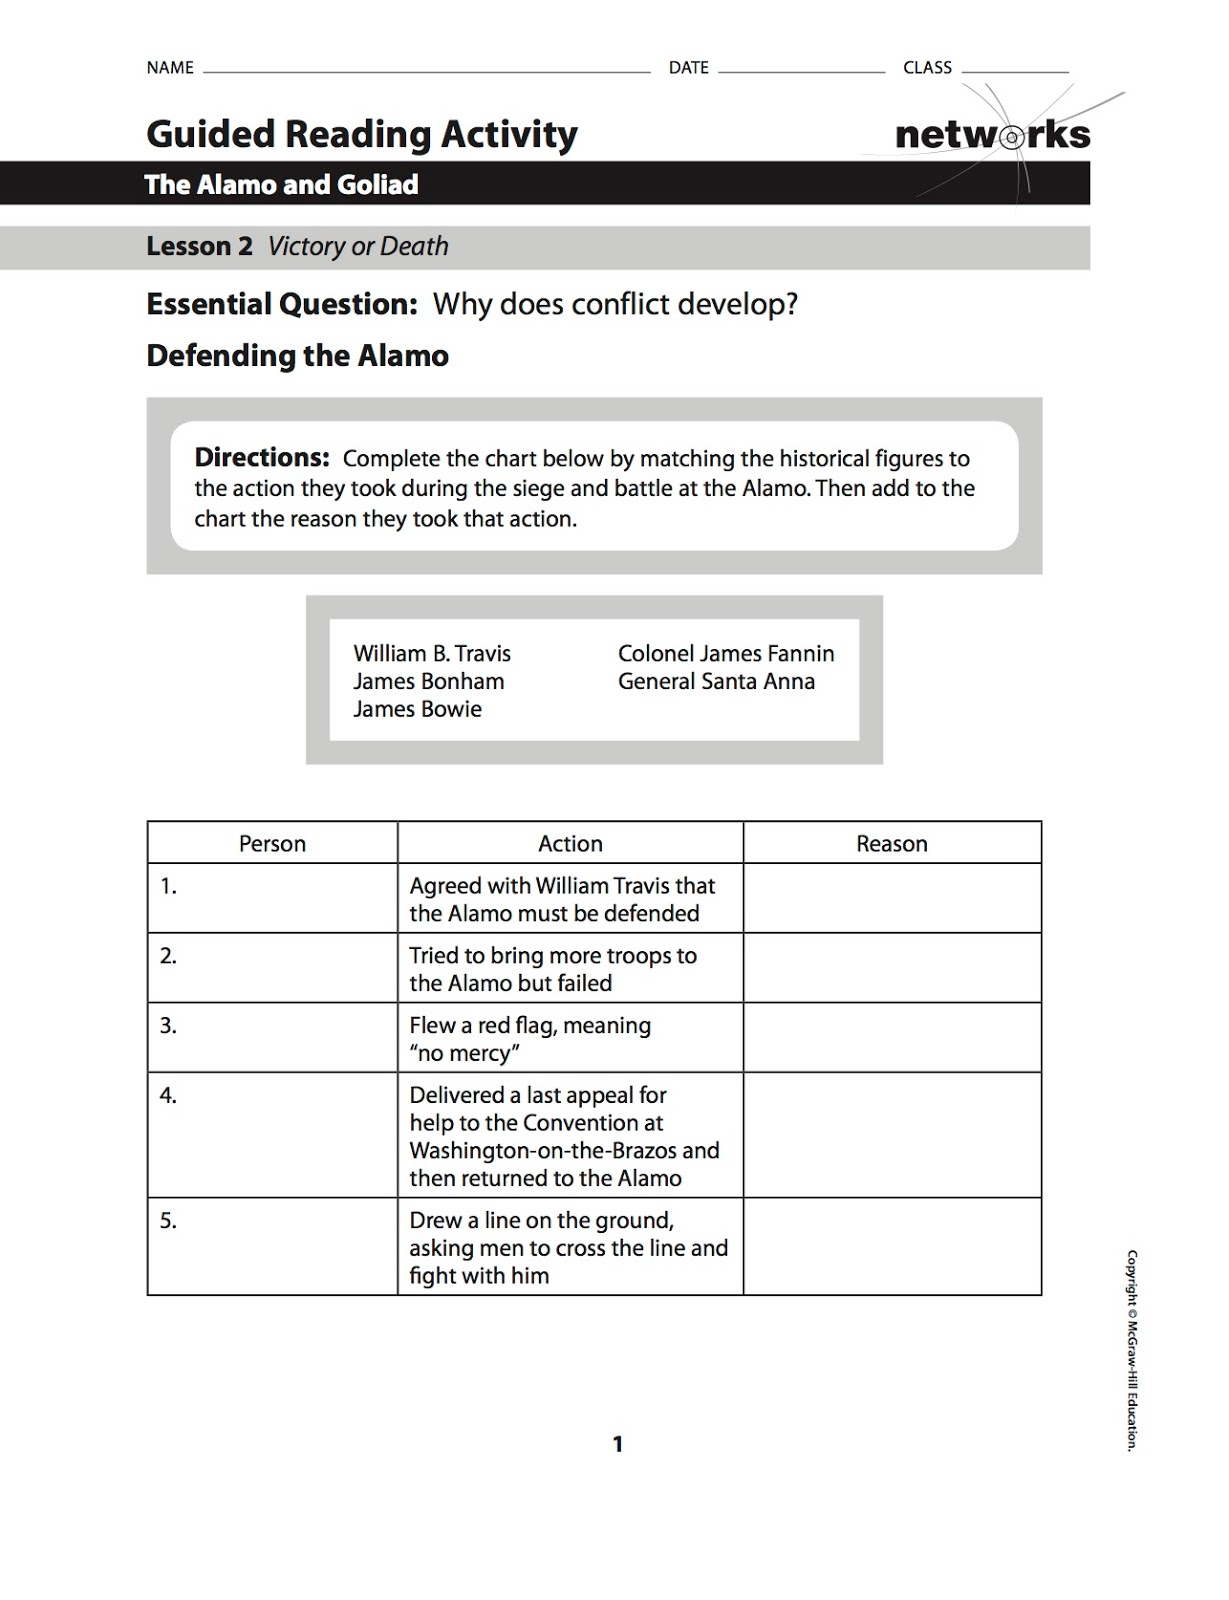 chapter 9 reading guide 2 Ap bio chapter 9 study guide - download as word doc (doc), pdf file (pdf), text file (txt) or read online.